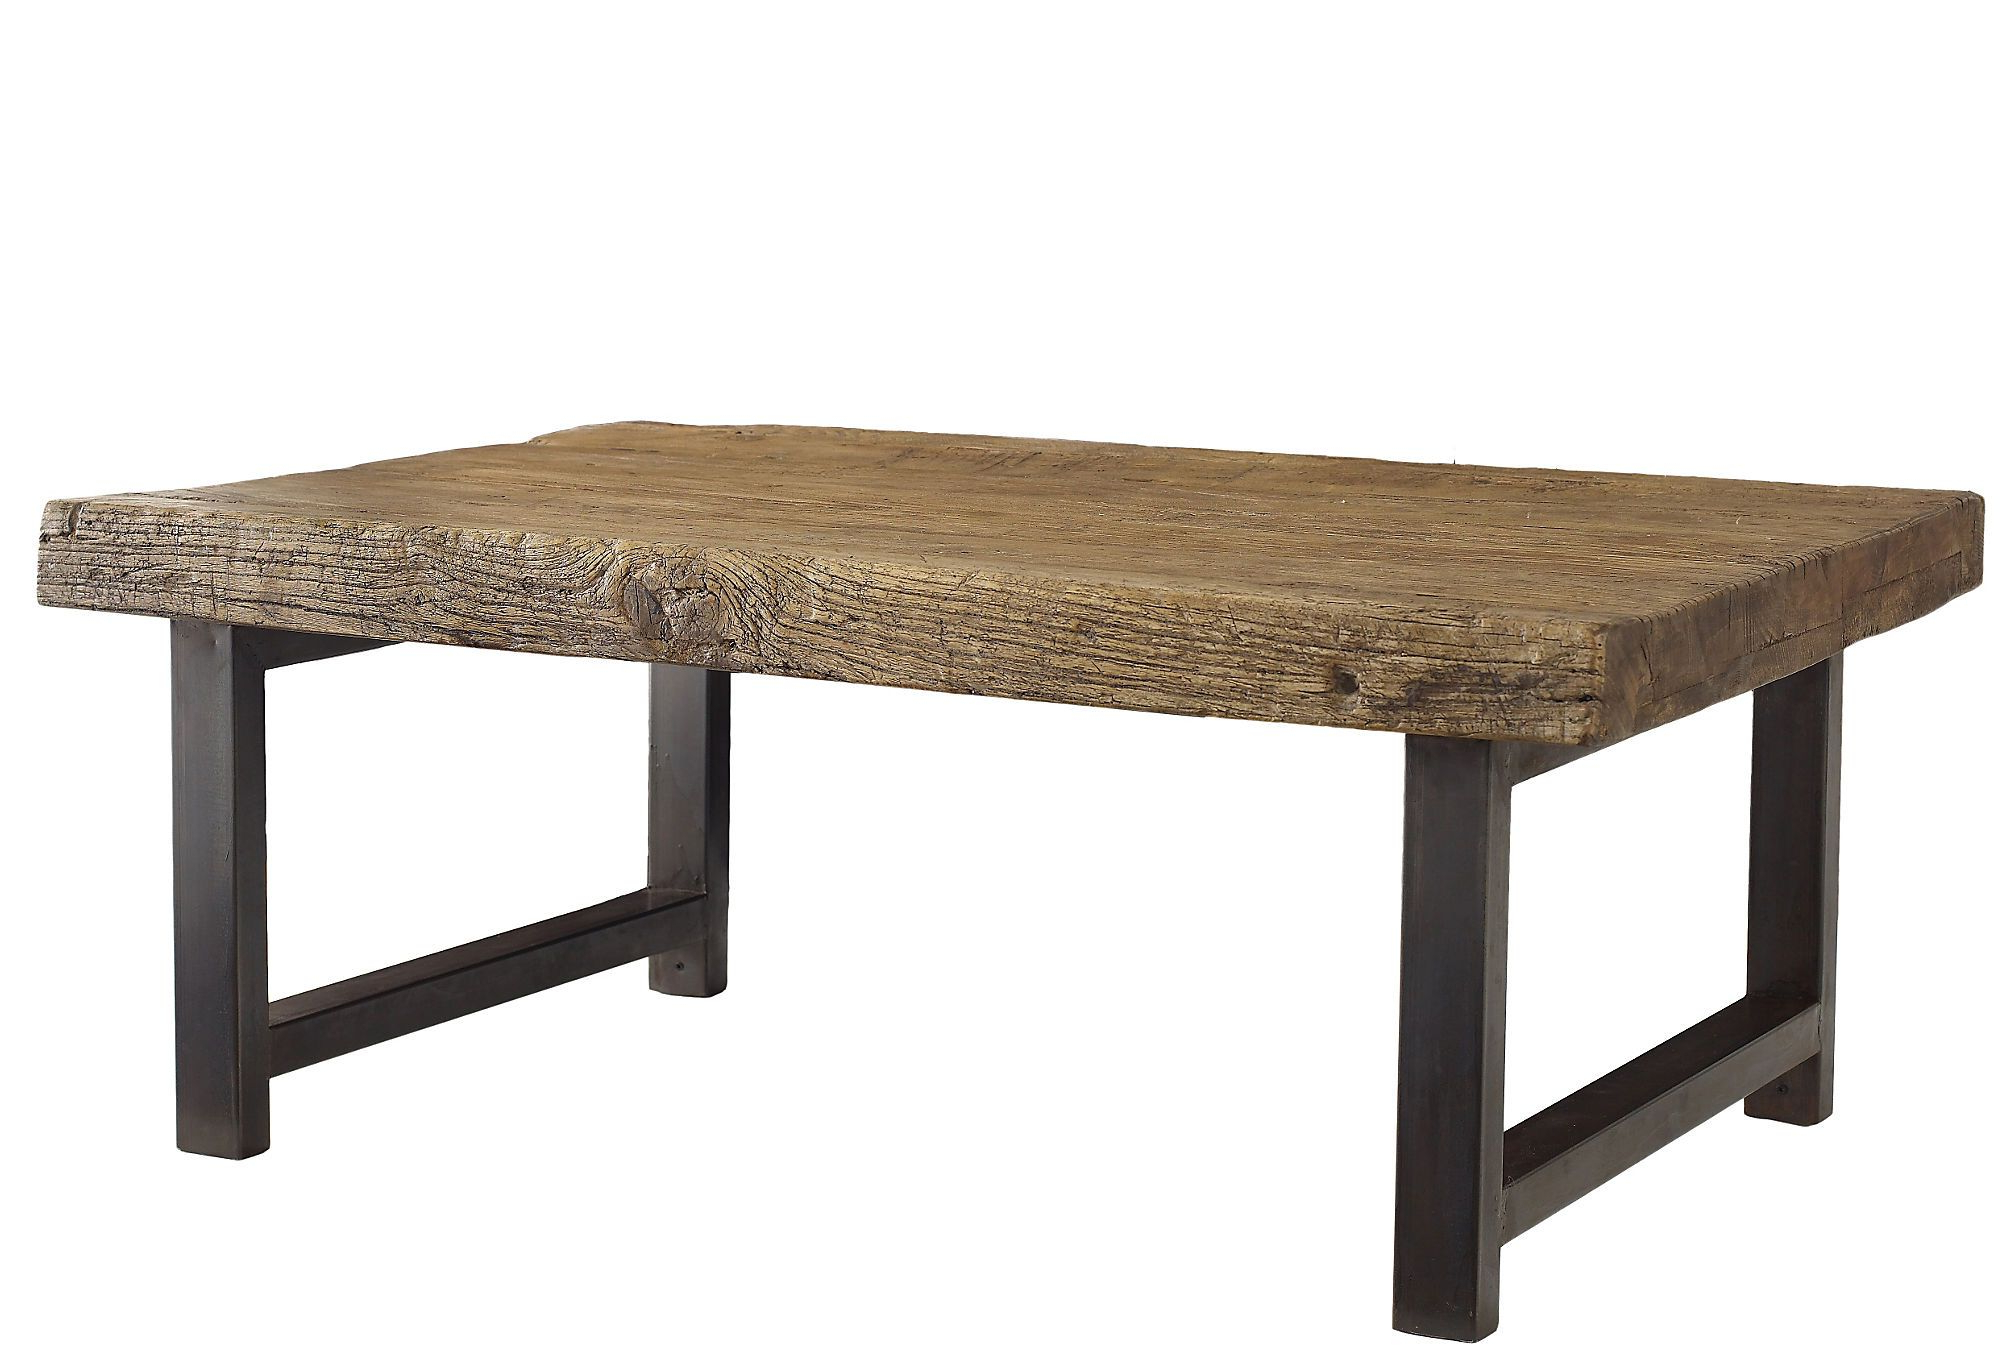 Favorite Weathered To Rustic Perfection, This Reclaimed Elm And Steel Table Inside Reclaimed Elm Iron Coffee Tables (View 7 of 20)